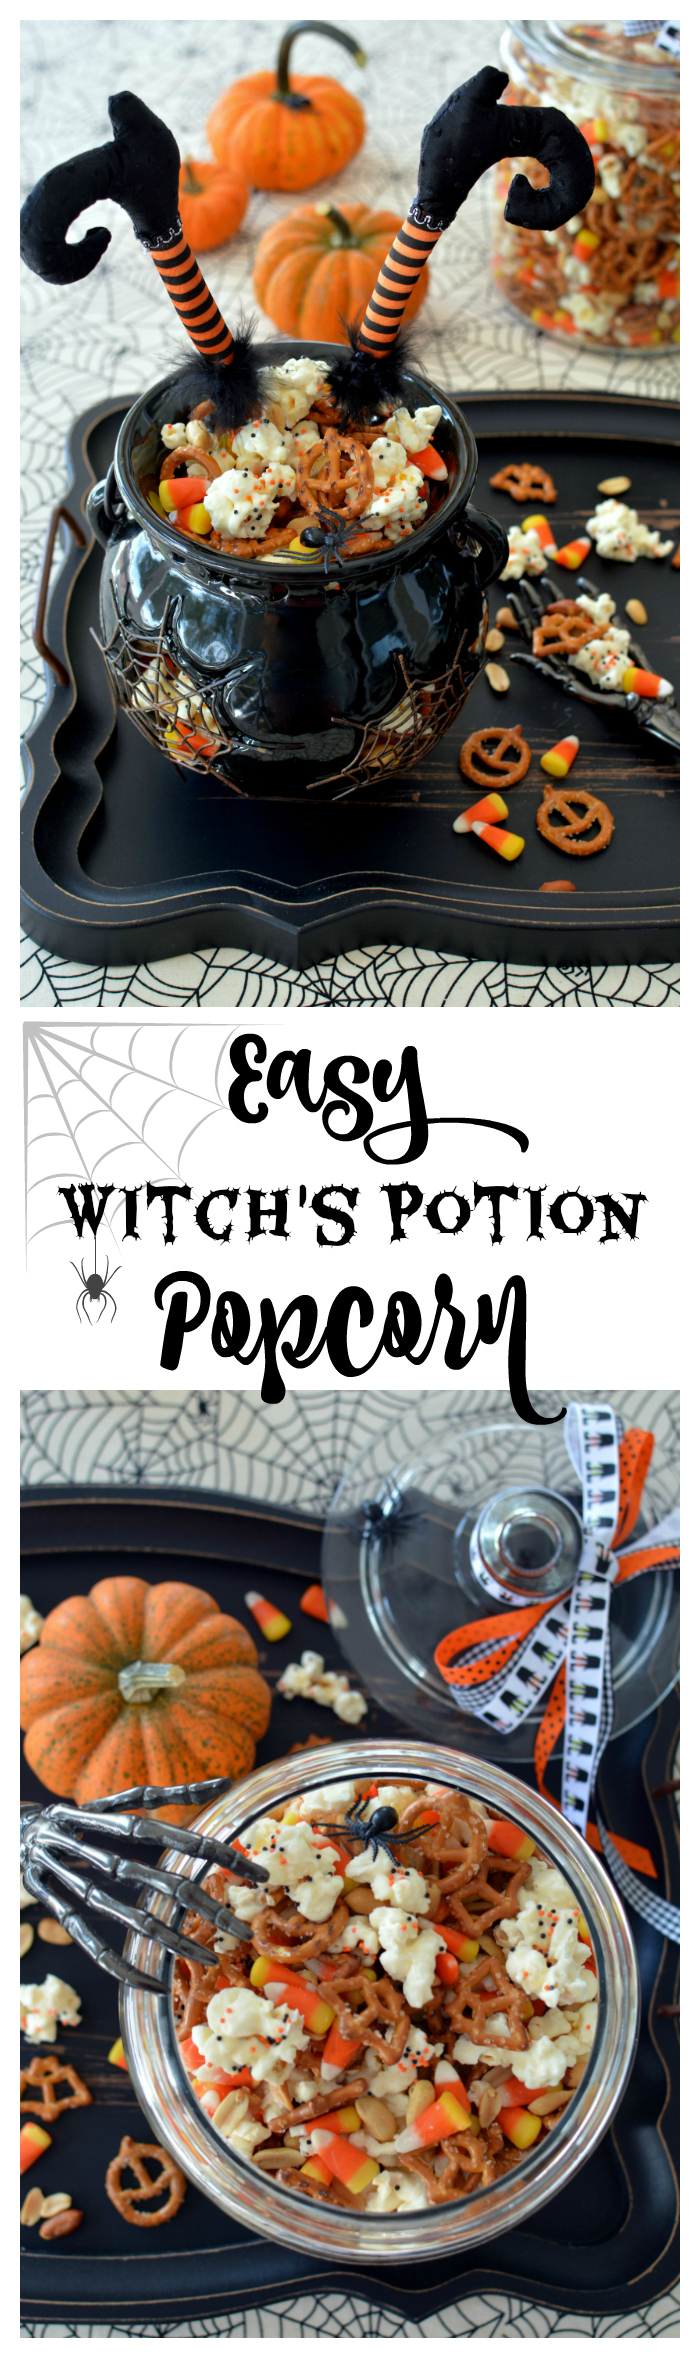 Easy Witch's Potion Popcorn: No Cauldron Required | | ©homeiswheretheboatis.net #Halloween #popcorn